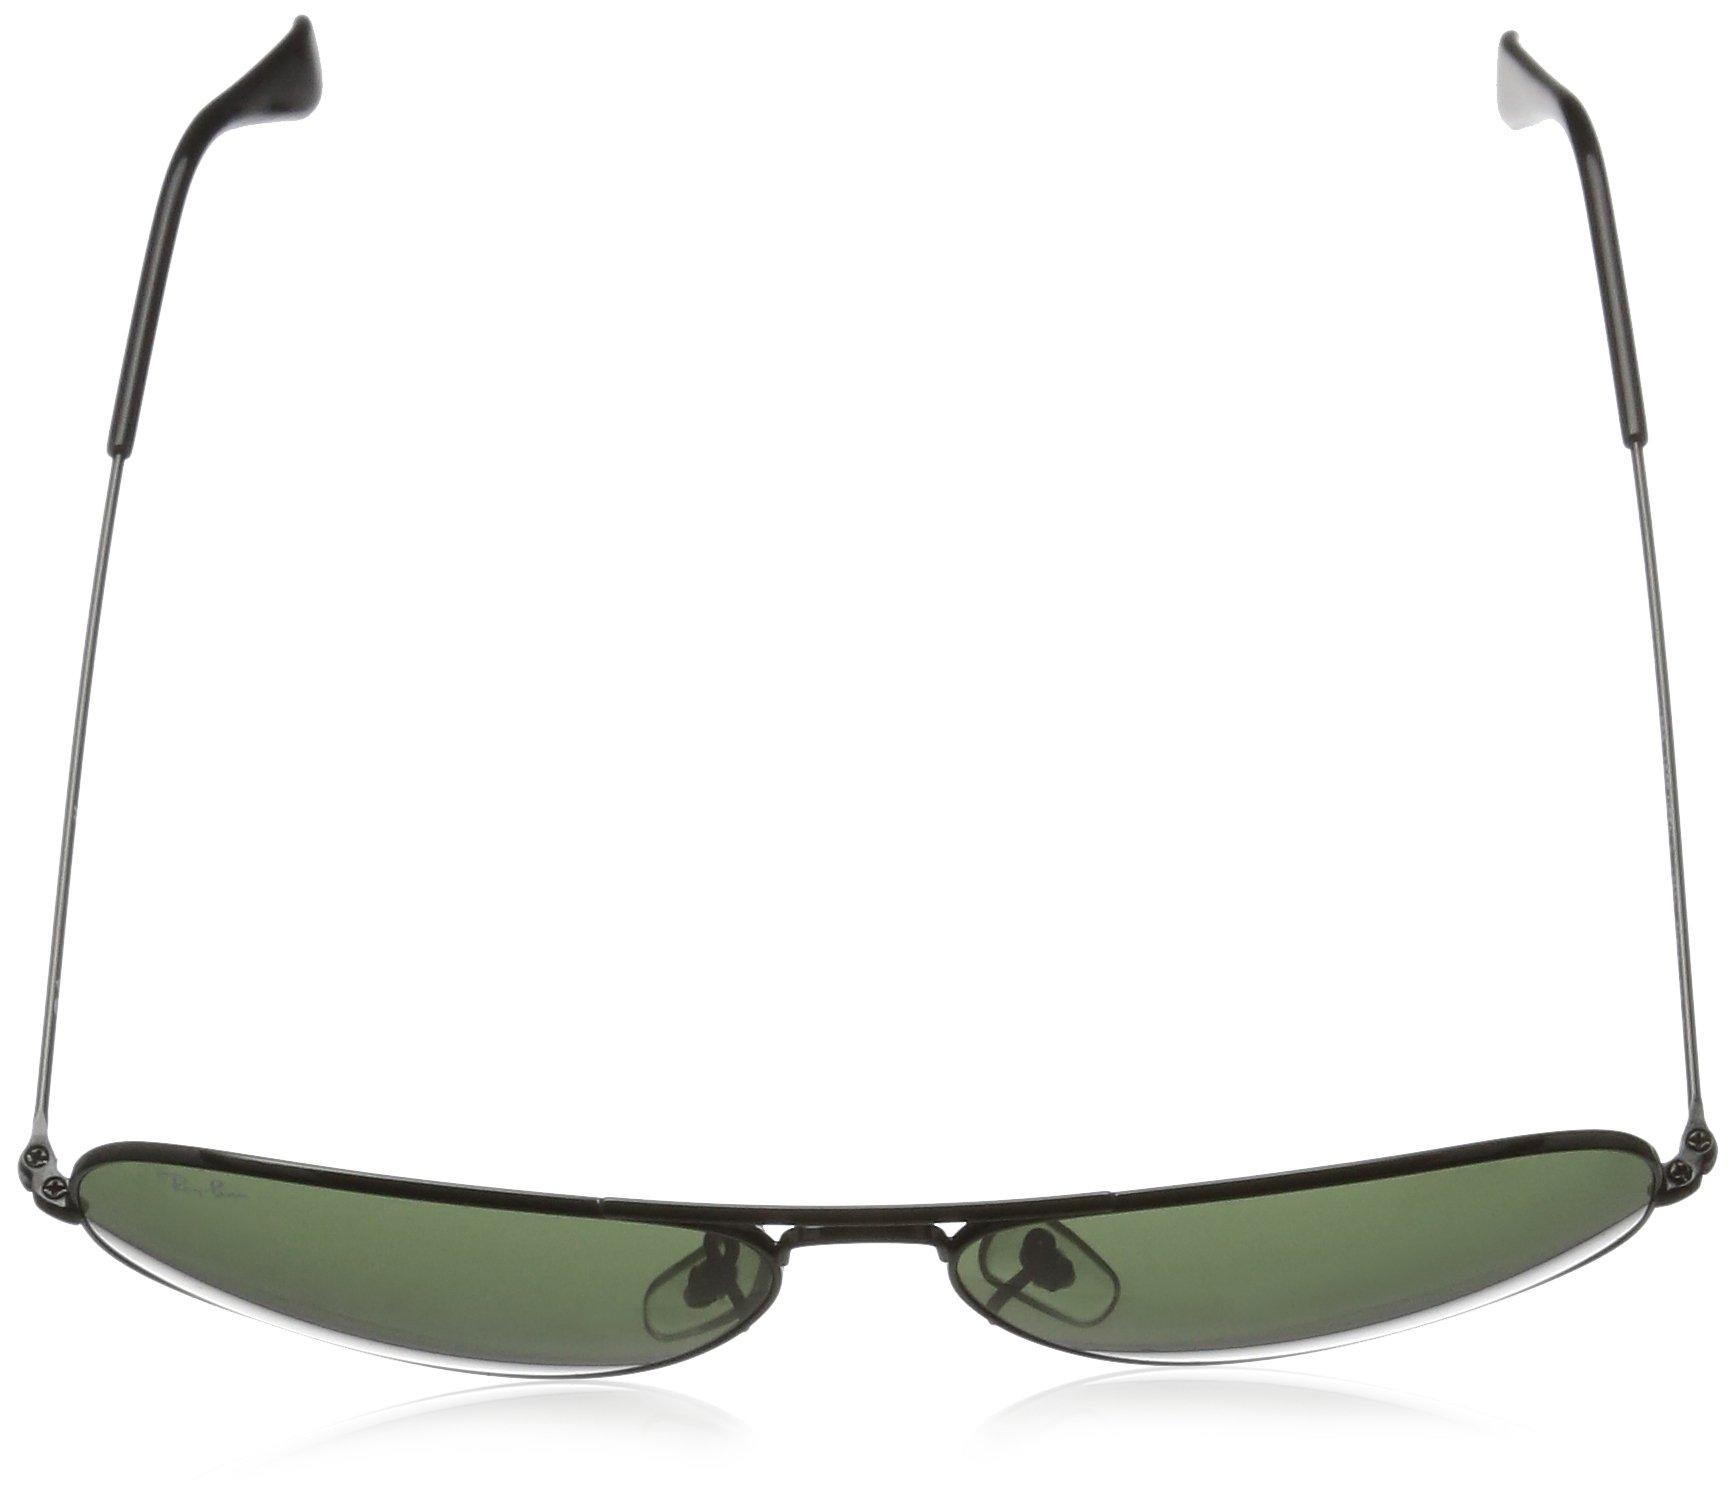 97cf0ffd1e Ray-Ban Sunglasses - RB3026 Aviator Large Metal II   Frame  Black (62mm)  Lens  Green - Rb 3026 L2821   Sunglasses   Clothing